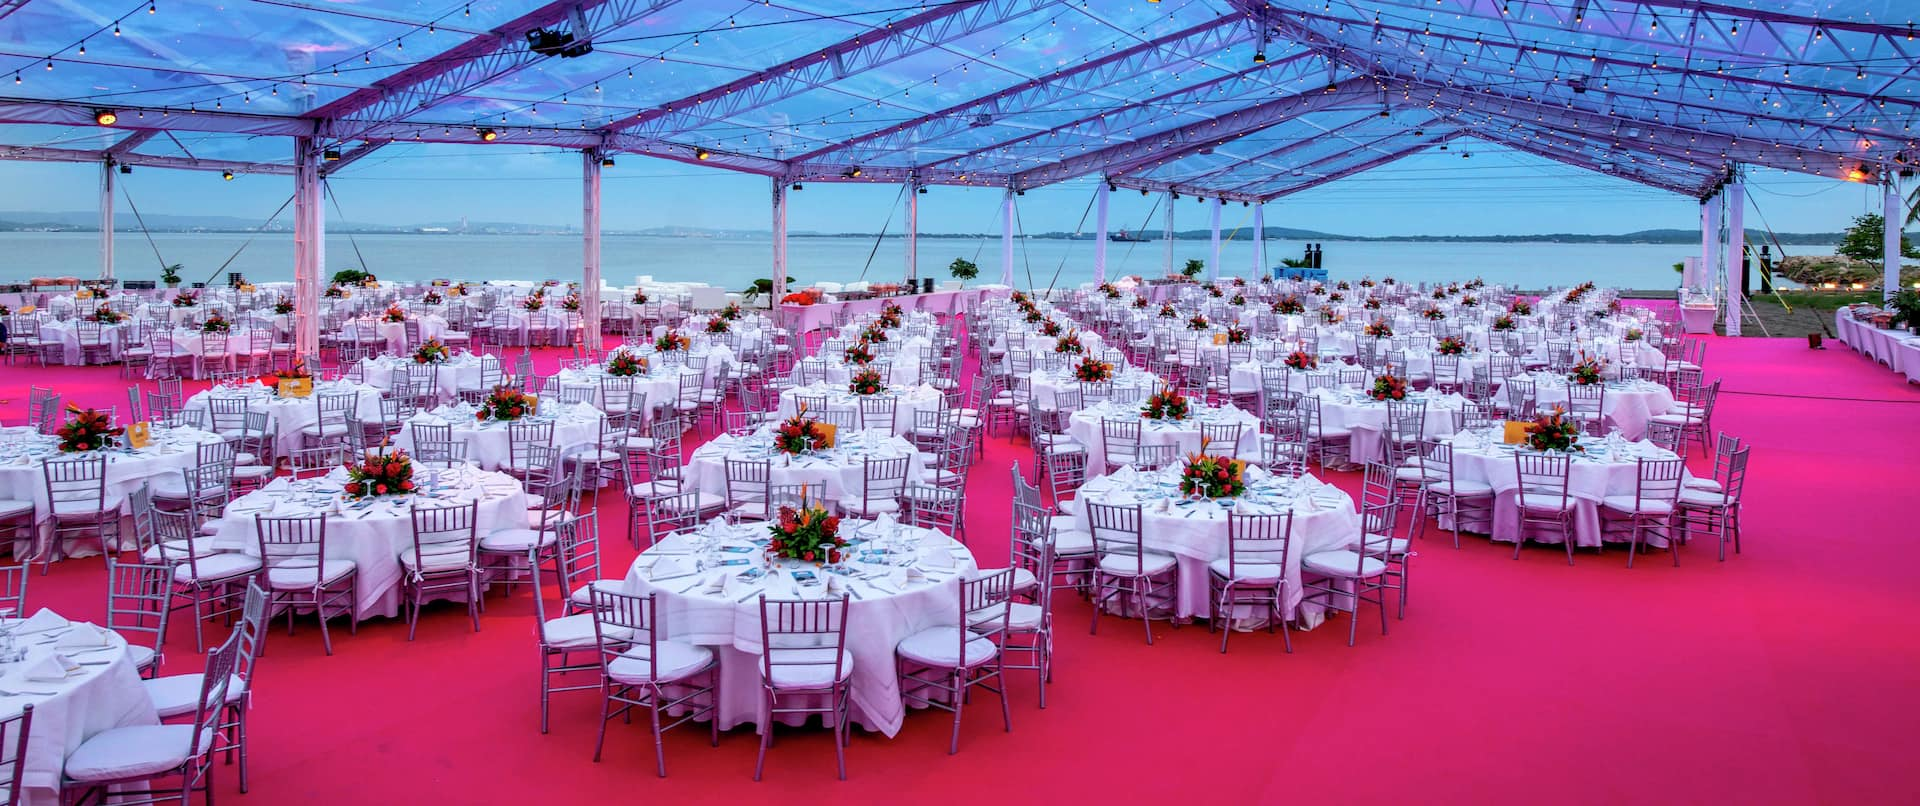 Covered Dining Event at the Beach